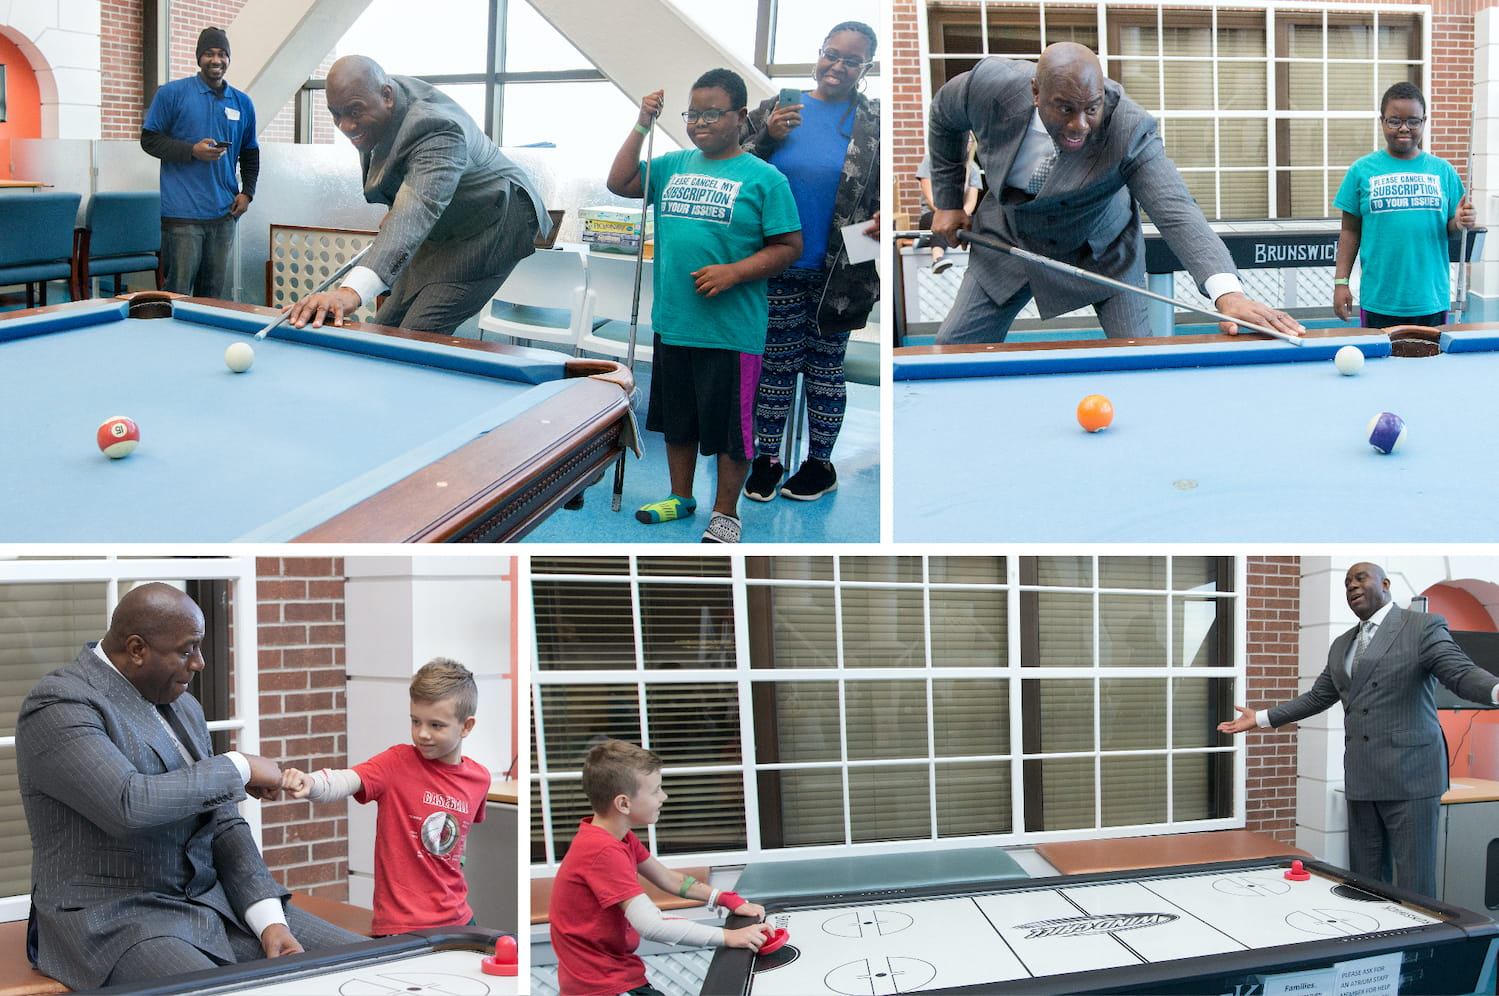 Magic Johnson played air hockey, shot pool and hung out with dozens of kids in the MUSC Children's Hospital